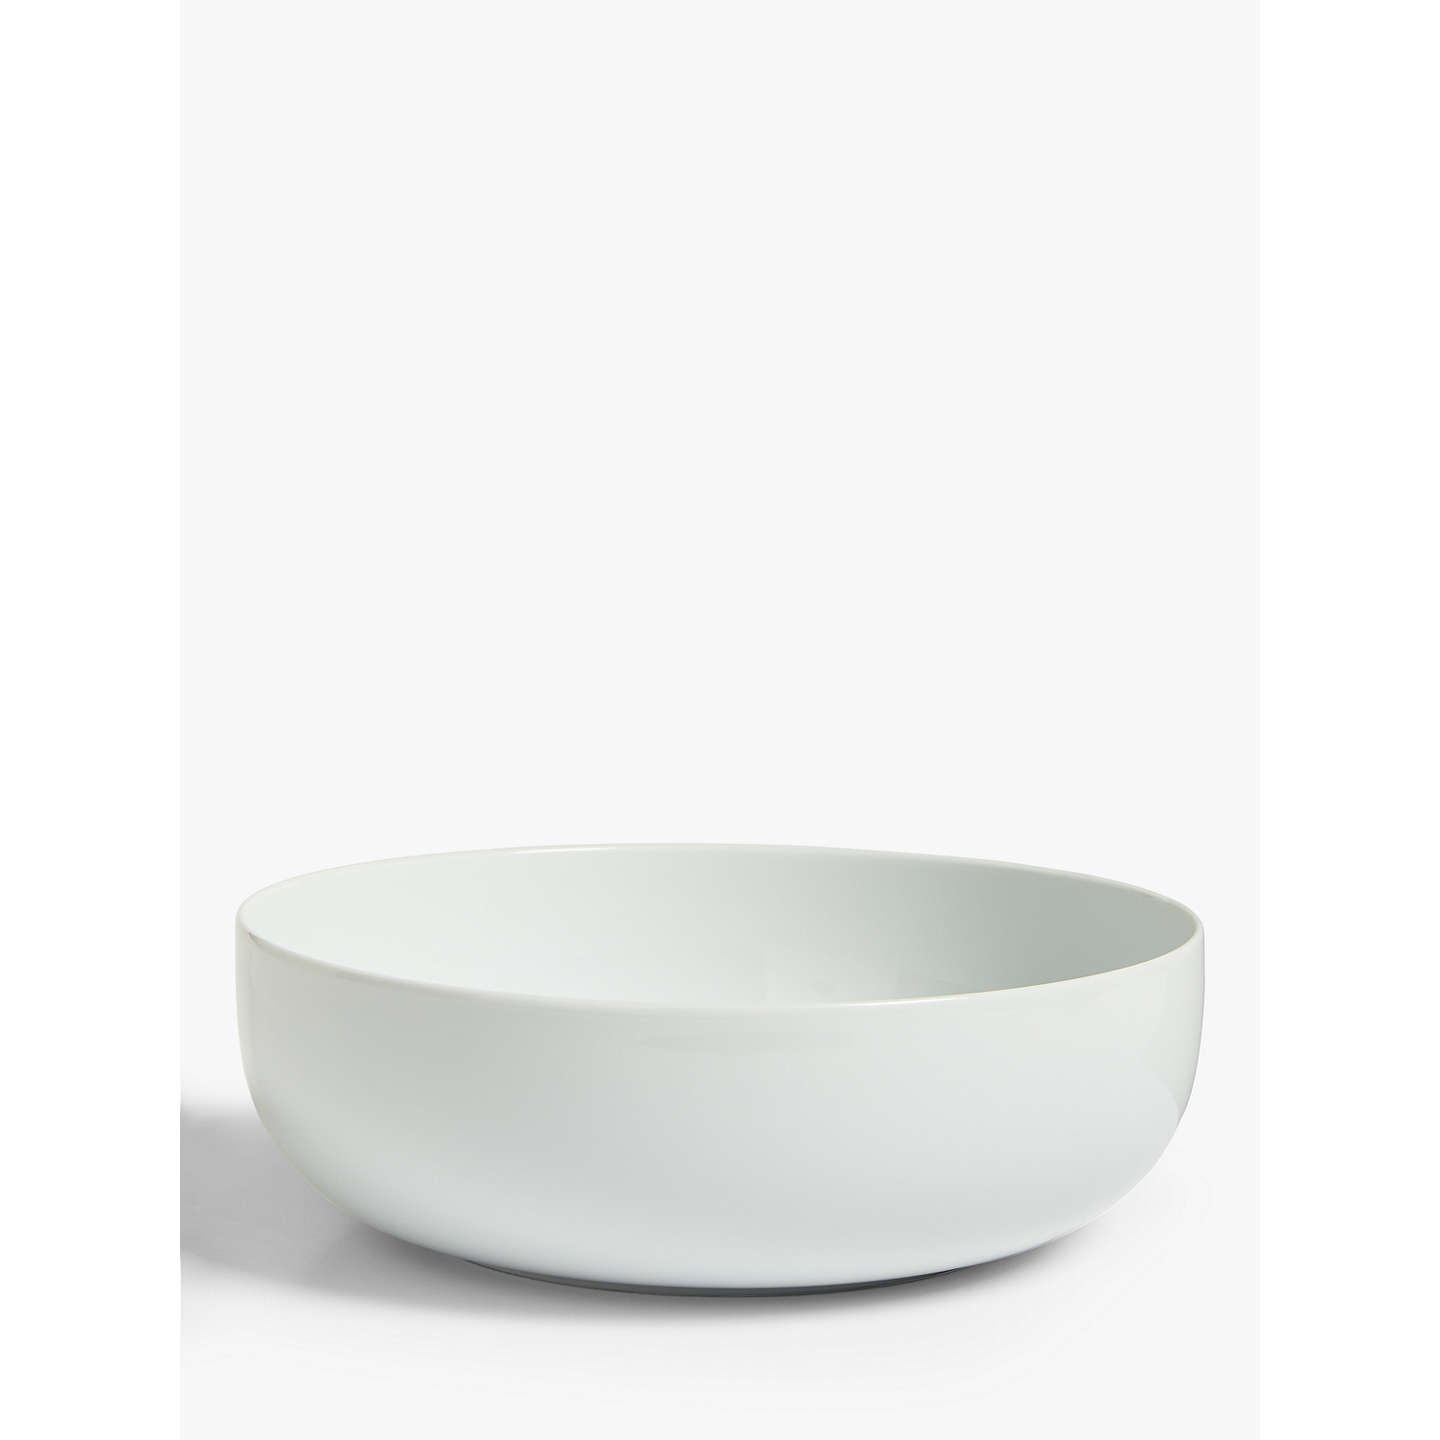 ... BuyHouse by John Lewis Eat Pasta Dinnerware Set White 5 Pieces Online at johnlewis ...  sc 1 st  John Lewis & House by John Lewis Eat Pasta Dinnerware Set White 5 Pieces at ...